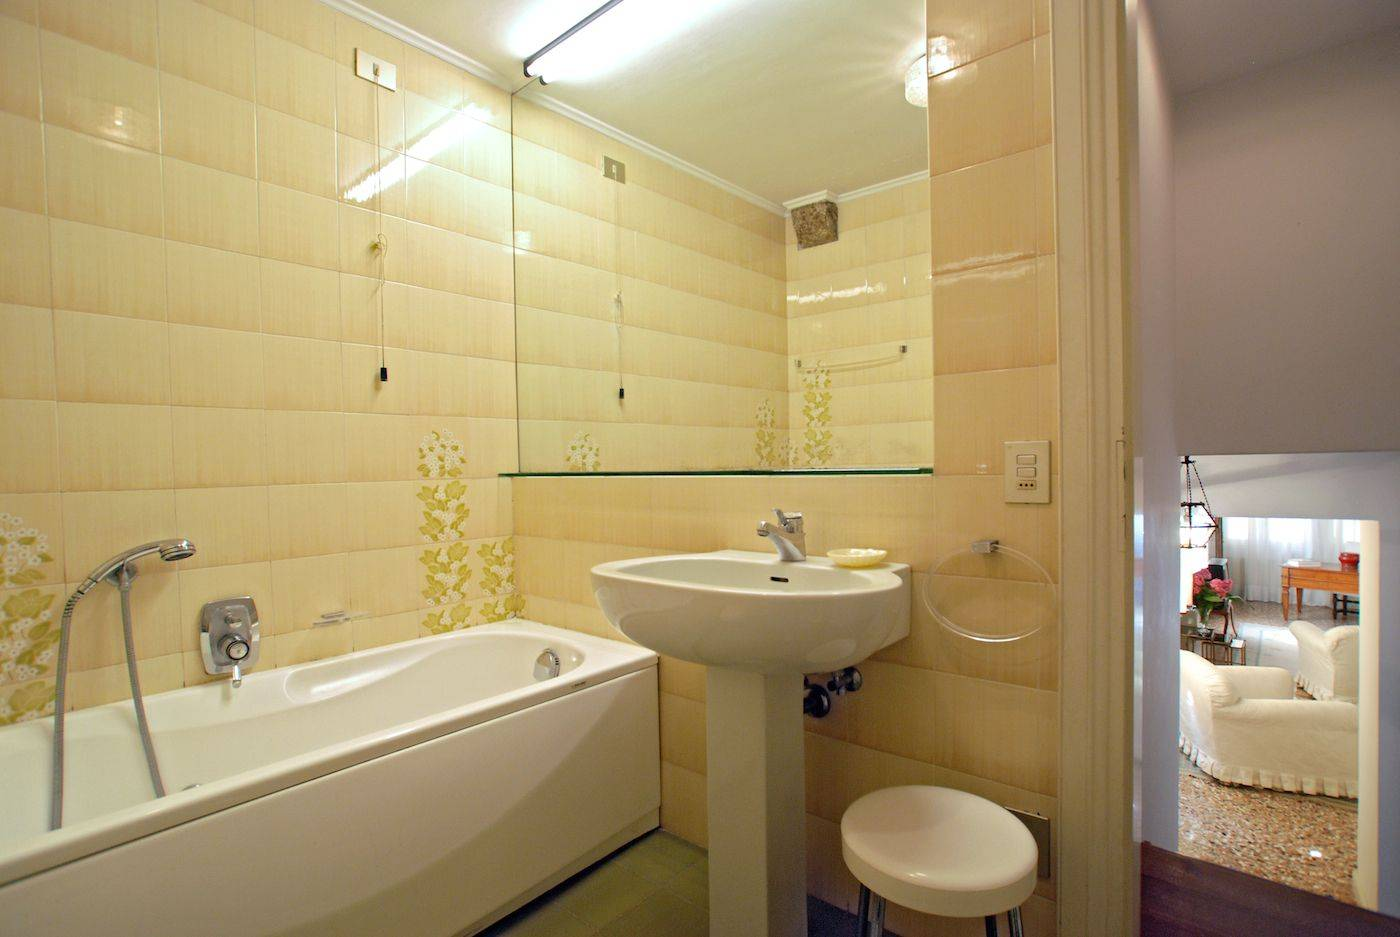 the bathrooom with tub